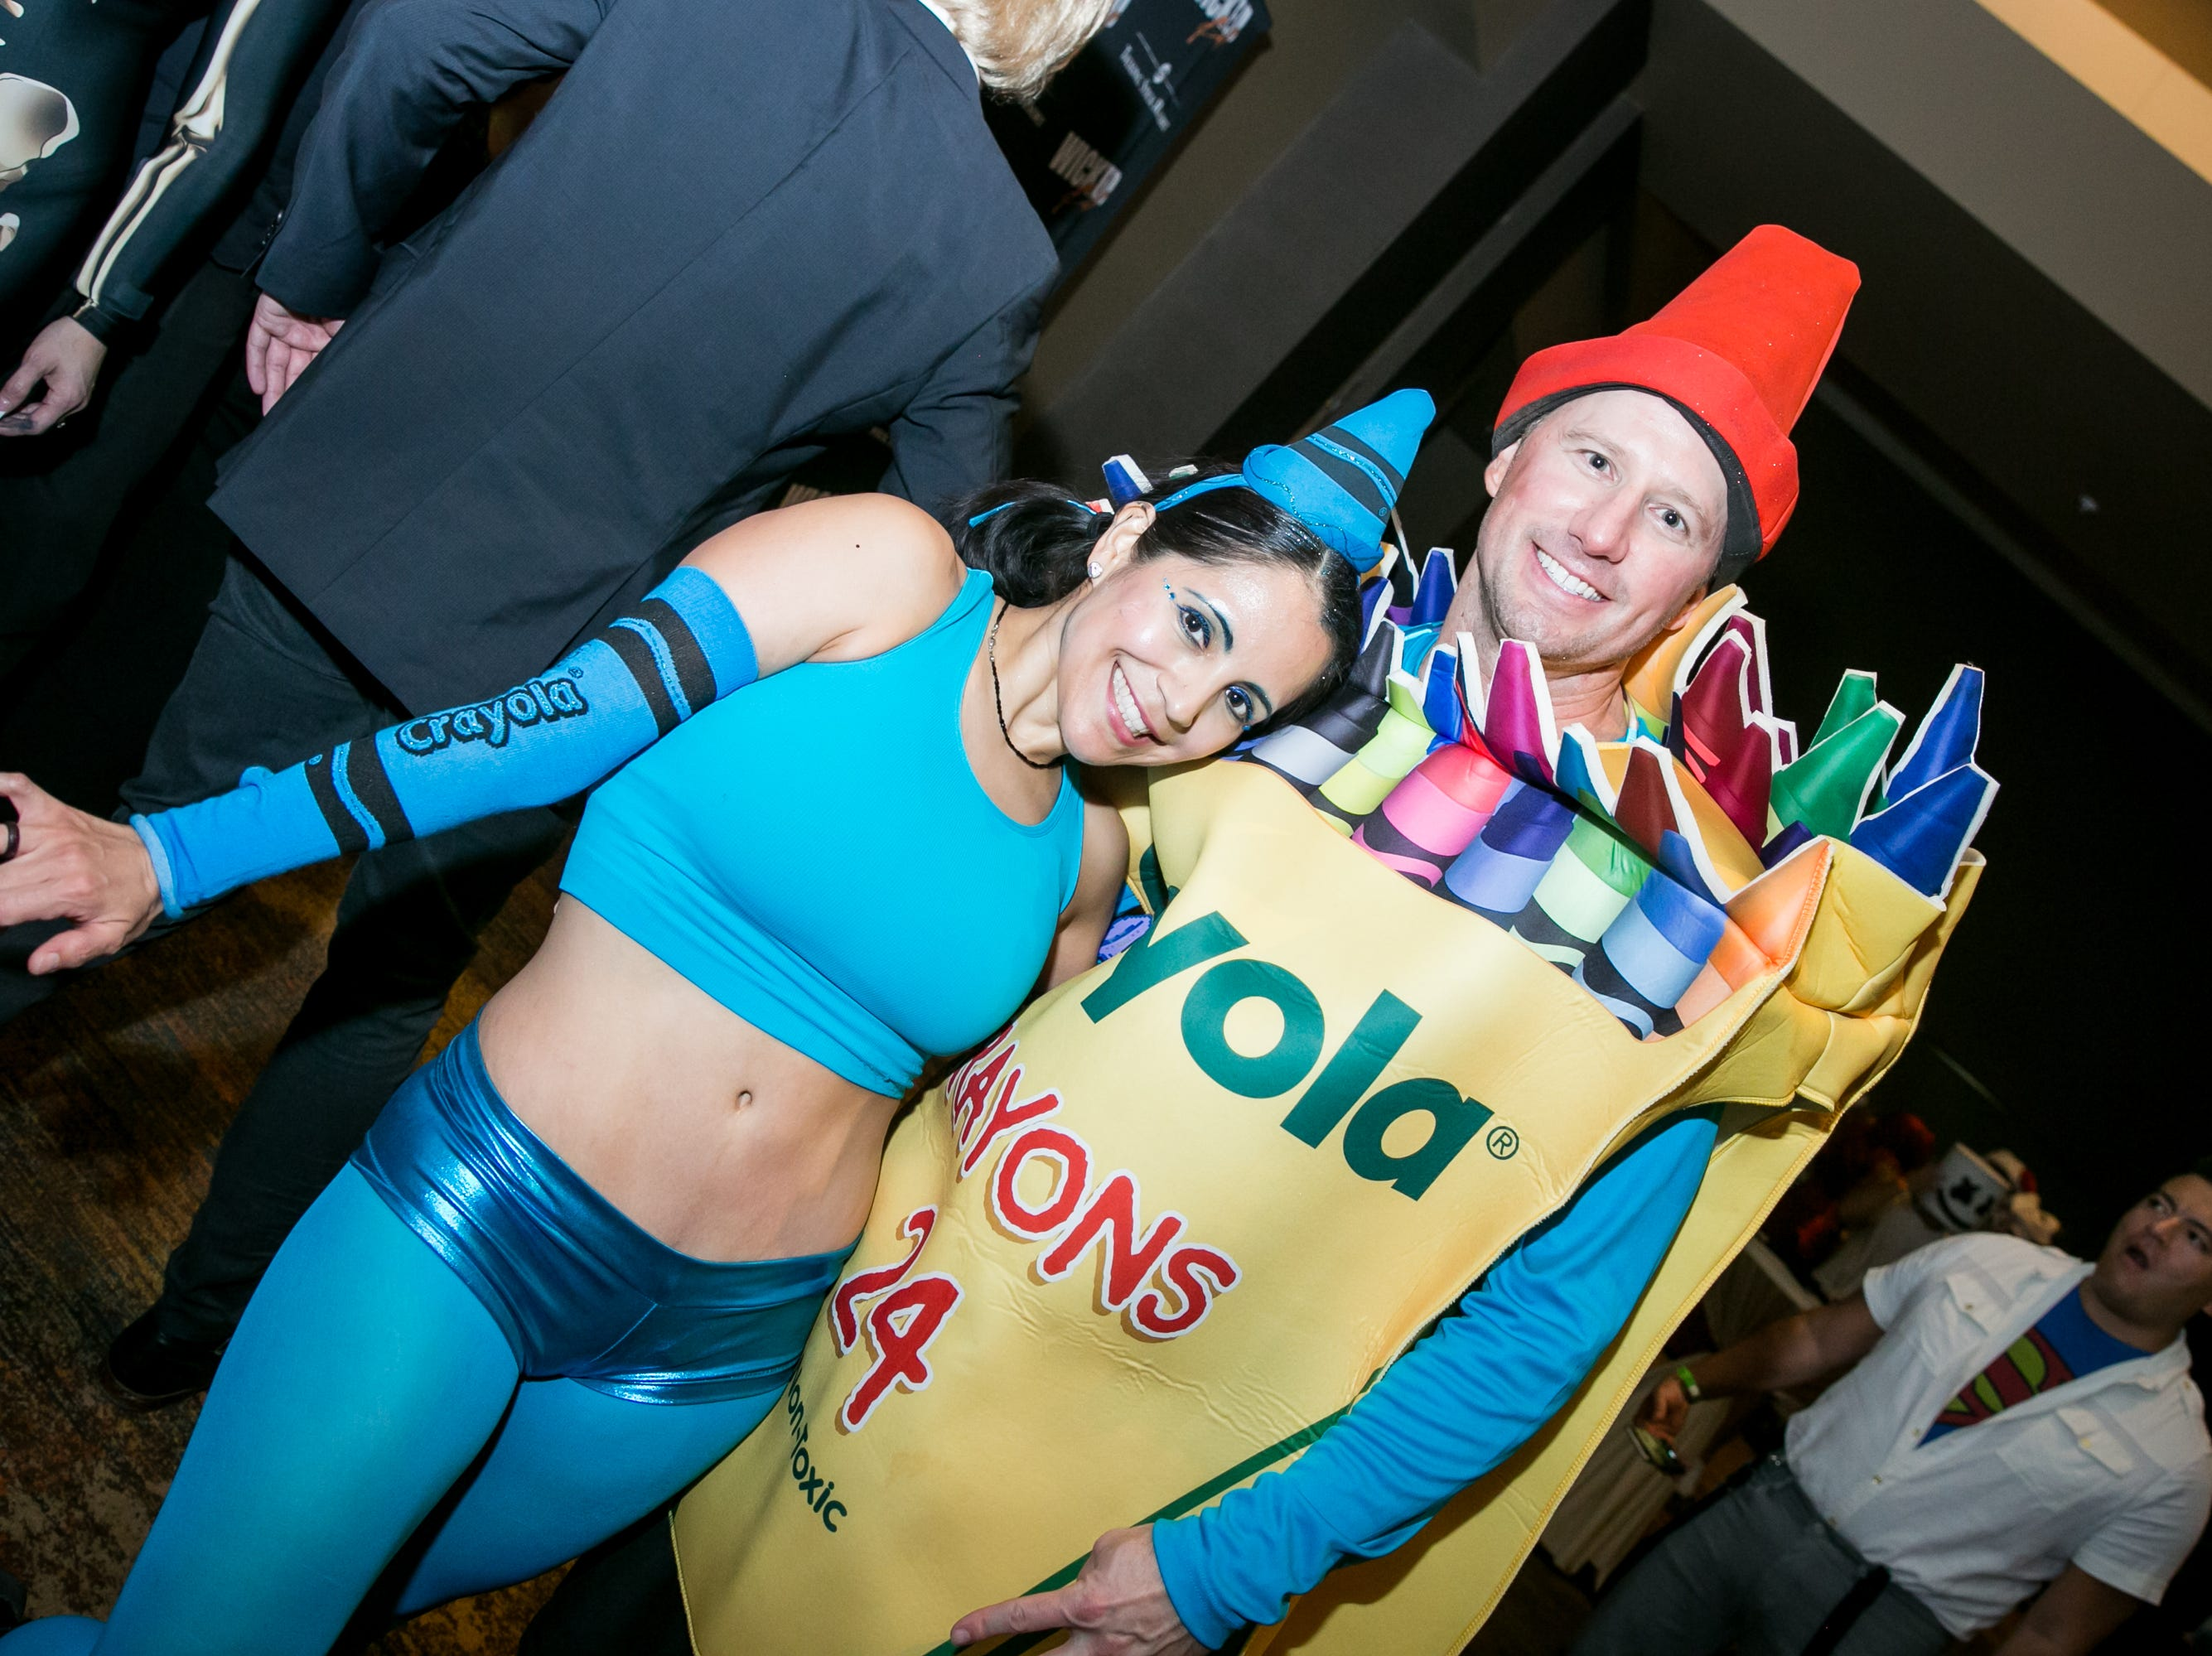 This crayon costume was cute during Wicked Ball at Talking Stick Resort on Saturday, October 27, 2018.